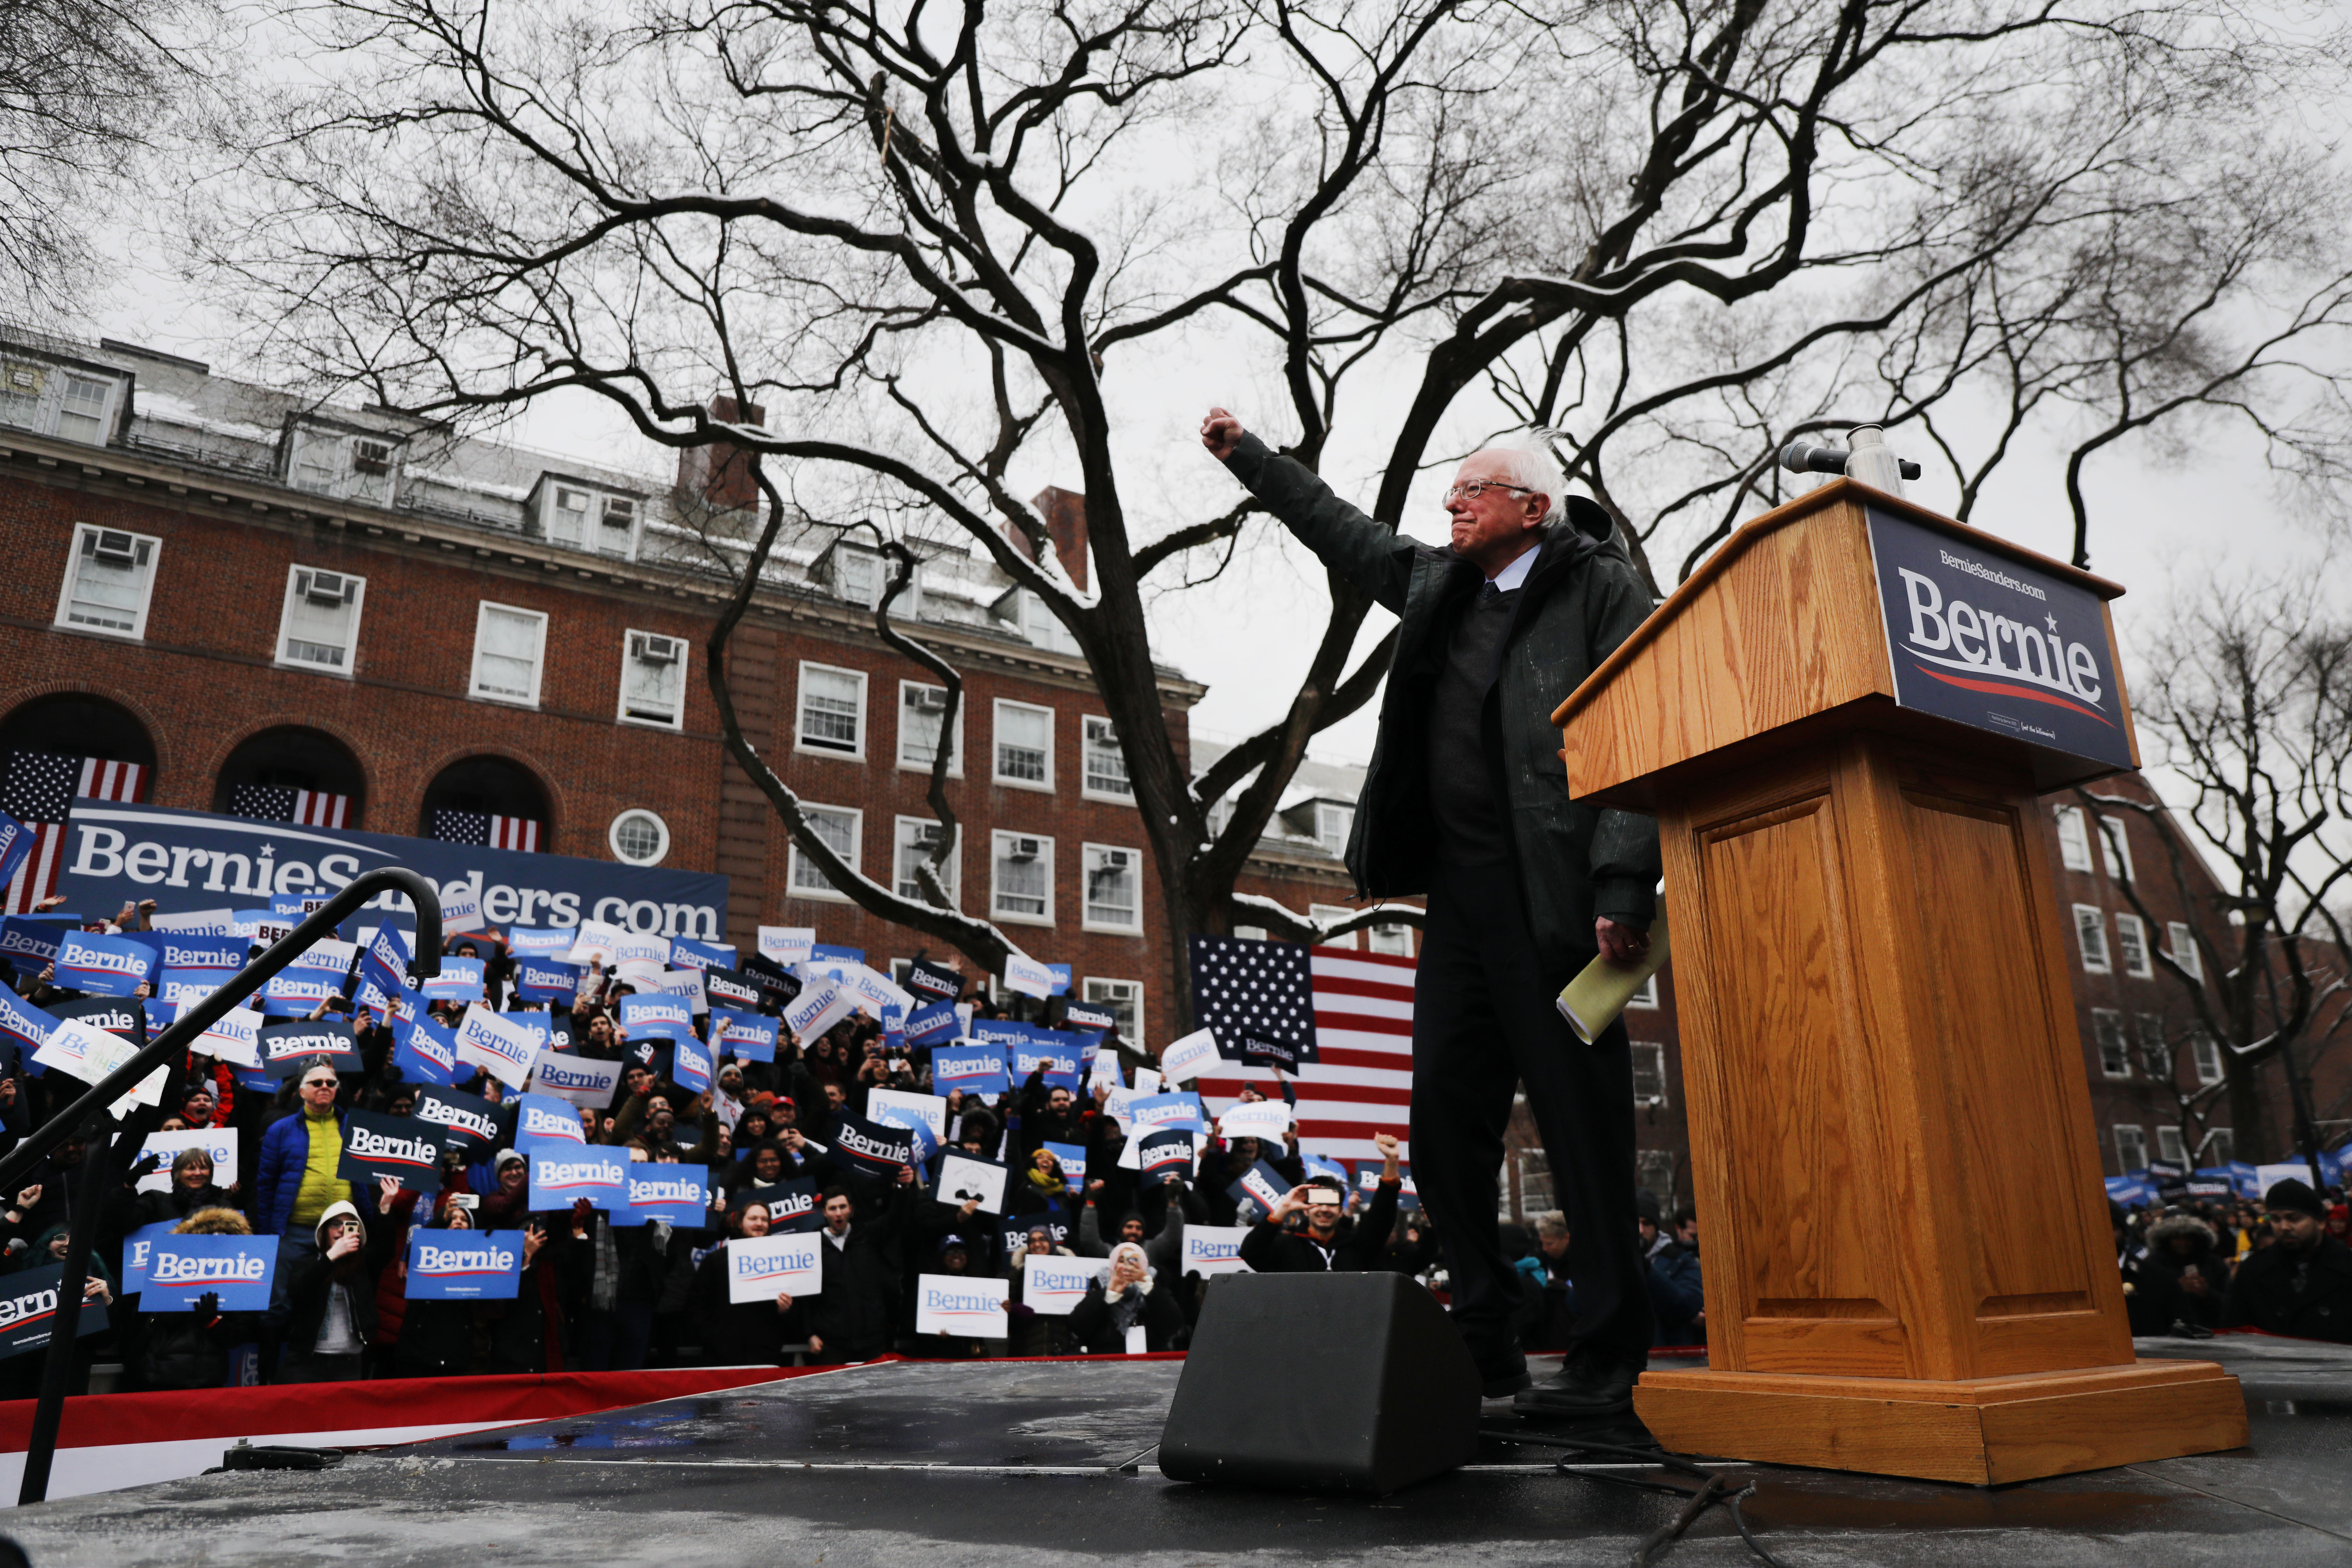 NEW YORK, NEW YORK - MARCH 02: Democratic Presidential candidate U.S. Sen. Bernie Sanders (I-VT) speaks to supporters at Brooklyn College on March 02, 2019 in the Brooklyn borough of New York City. Sanders, a staunch liberal and critic of President Donald Trump, is holding his first campaign rally of the 2020 campaign for the Democratic Party's presidential nomination in his home town of Brooklyn, New York. (Photo by Spencer Platt/Getty Images)